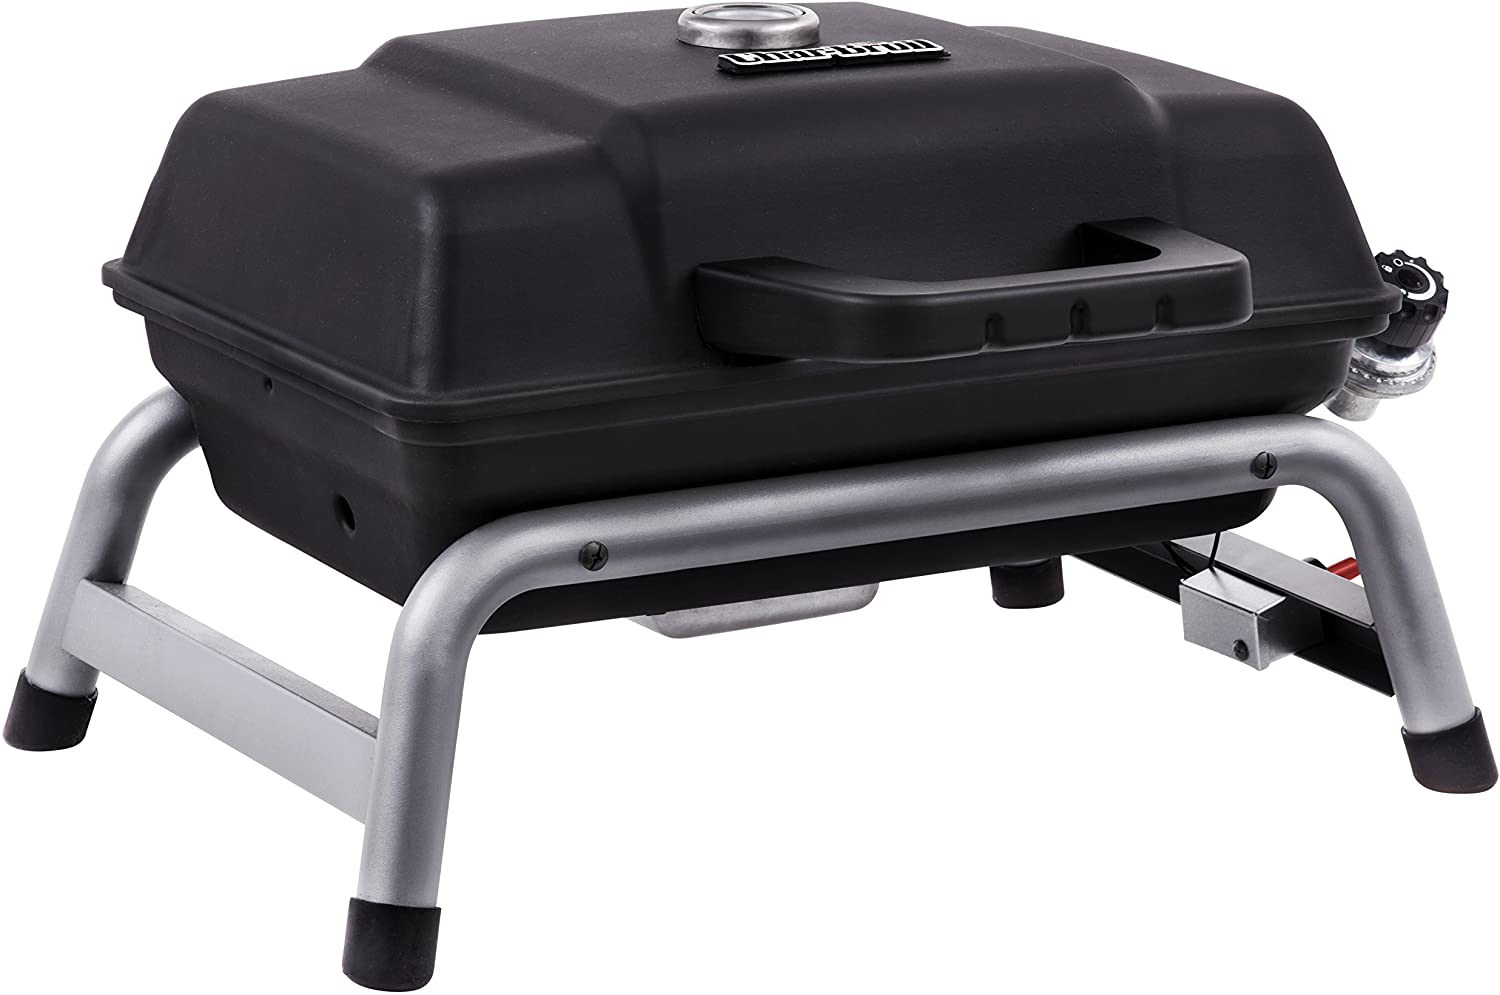 Char-Broil Portable Propane Gas Grill